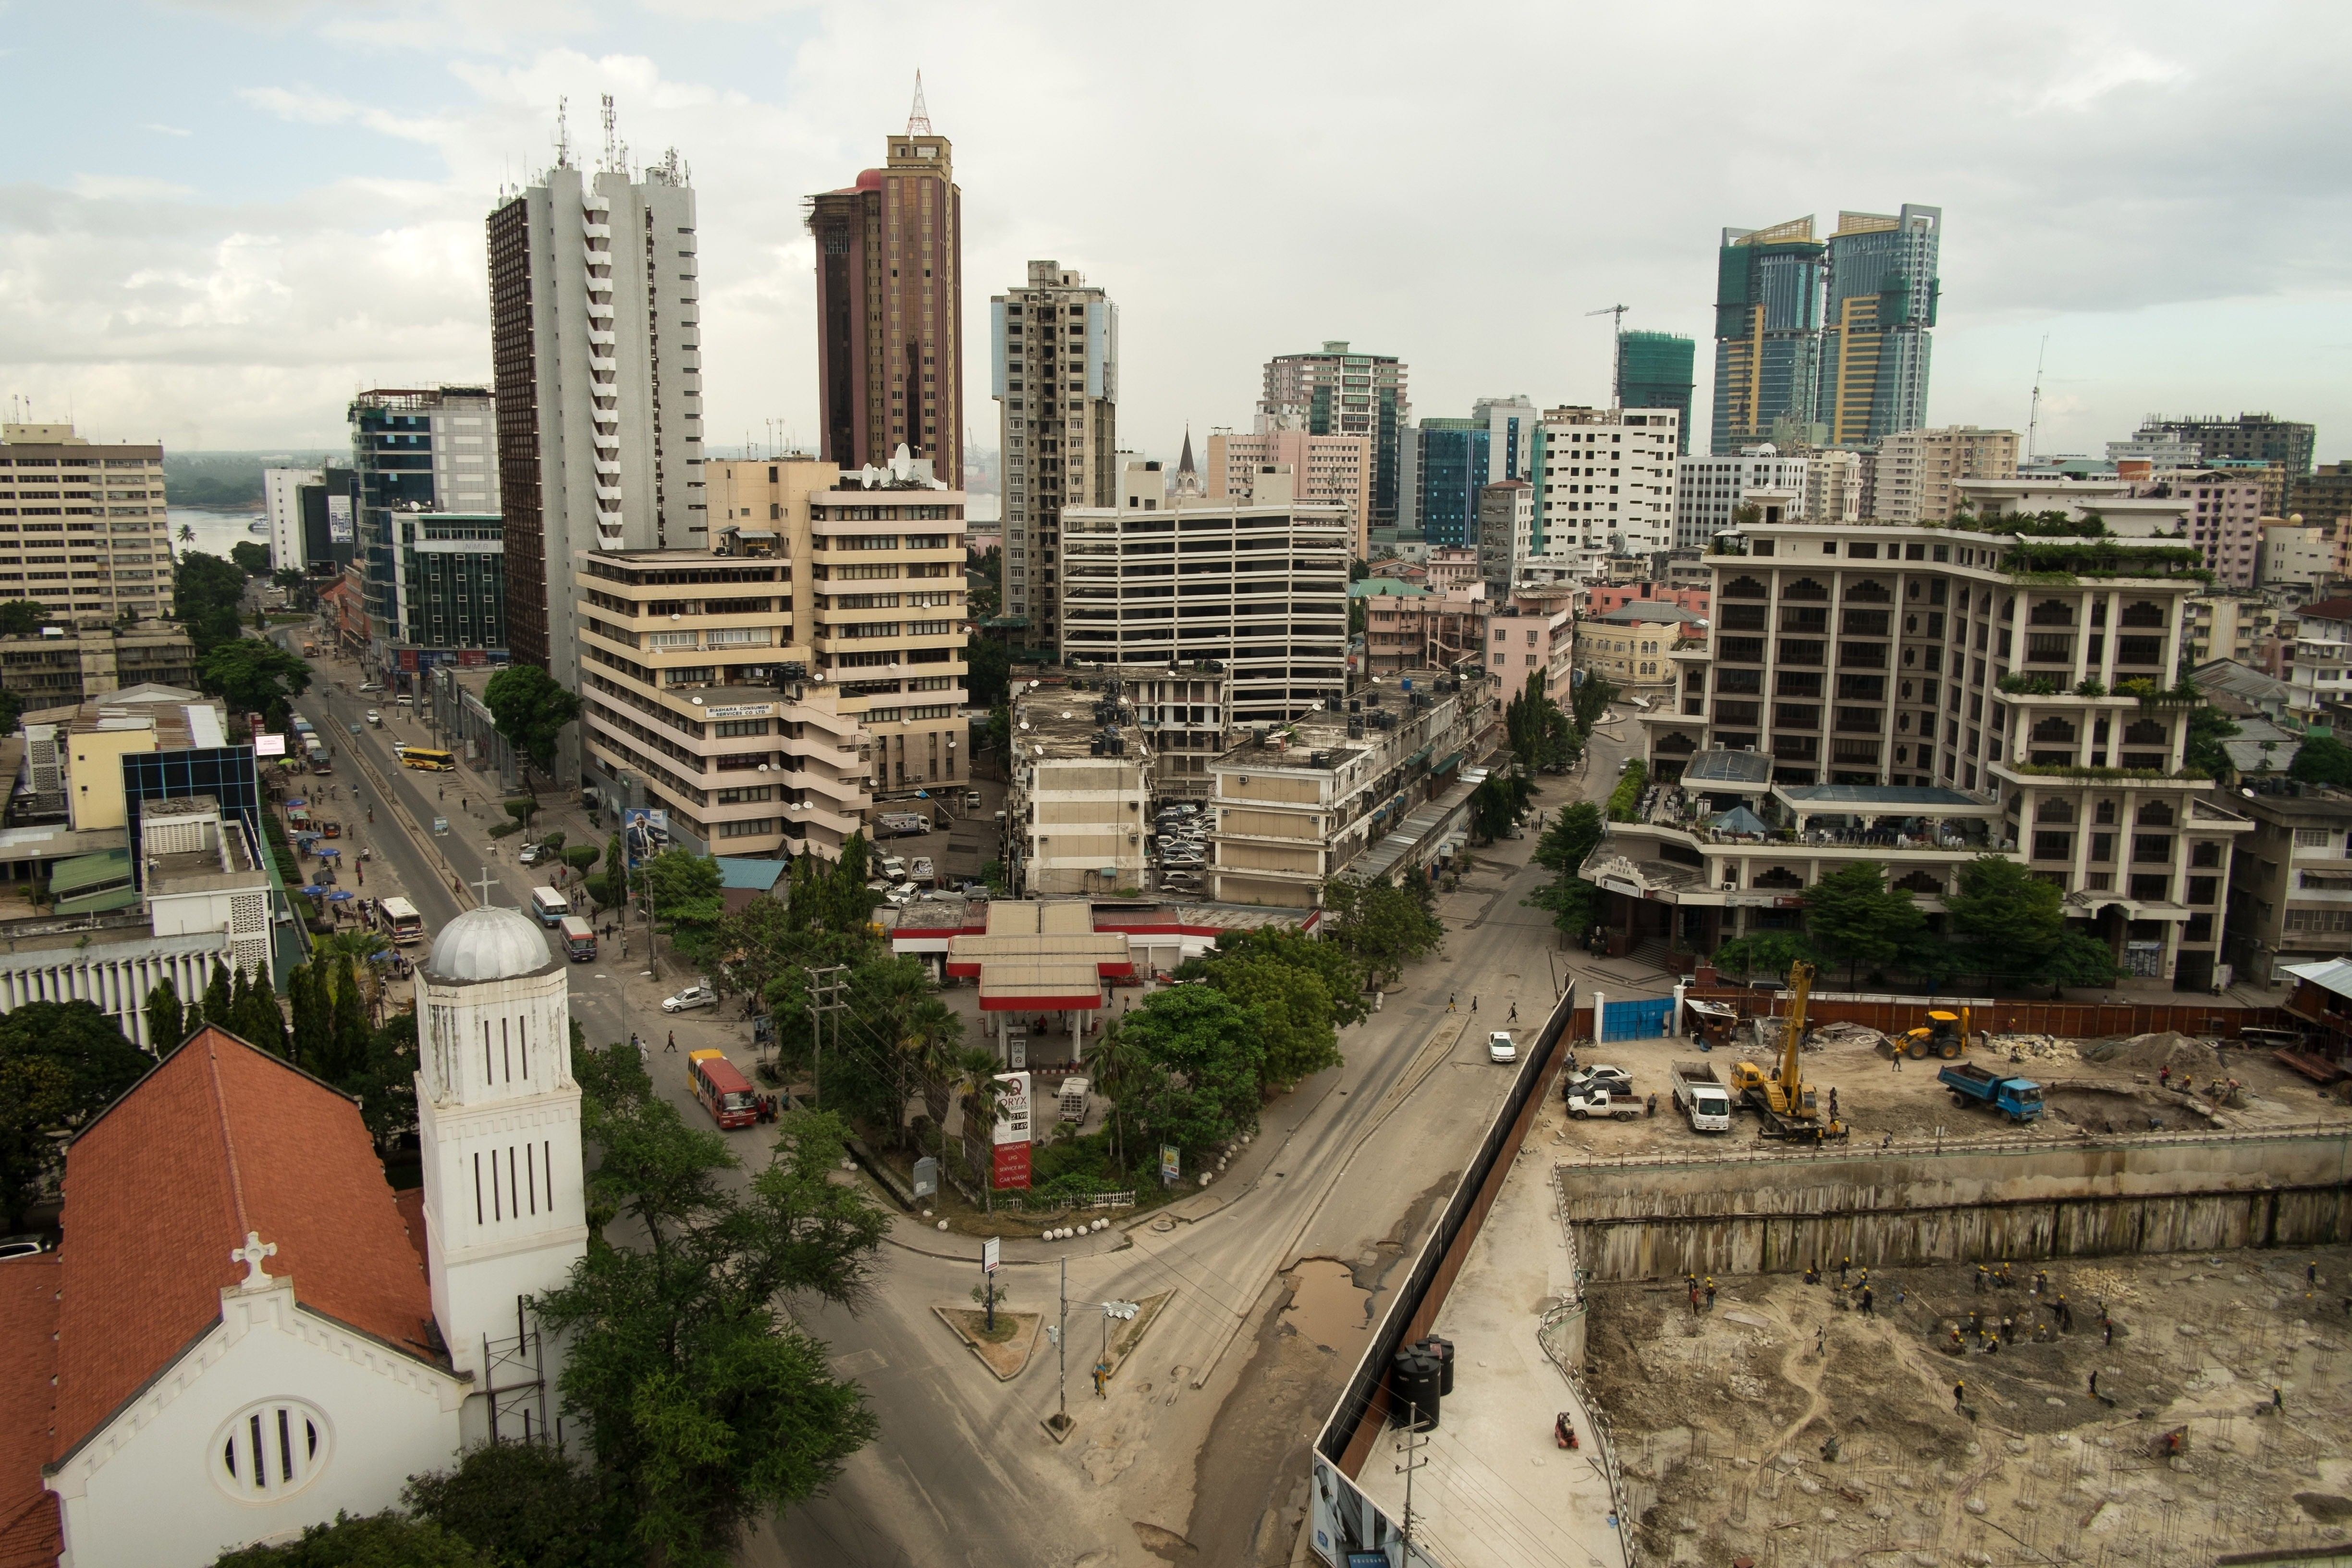 A view shows central Dar es Salaam, Tanzania.